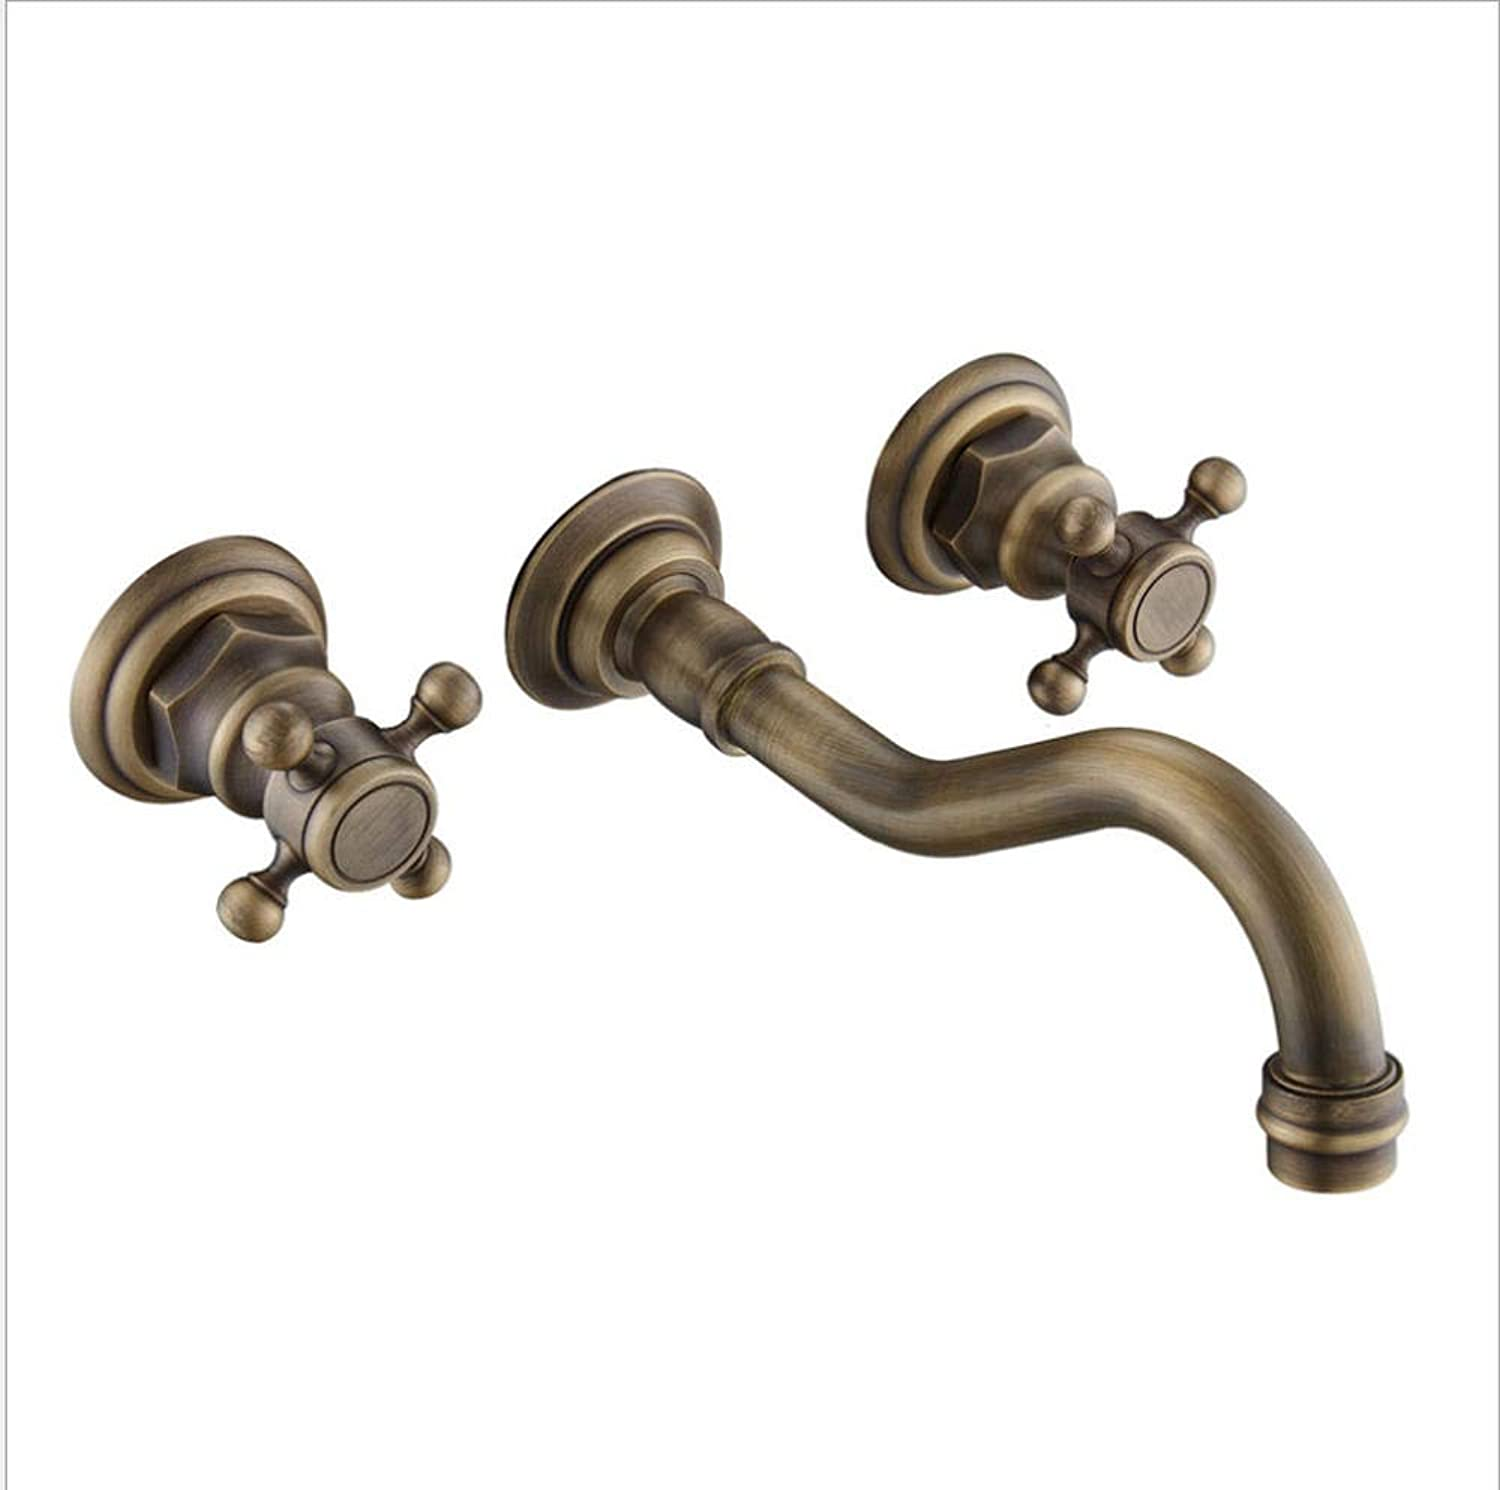 Floungey Kitchen Sink Taps Bathroom Sink Taps Brass Split Double Face Basin Faucet Three Sets Of Antique Bathtub Cabinet Mixing Faucet With Three Holes Into The Wall